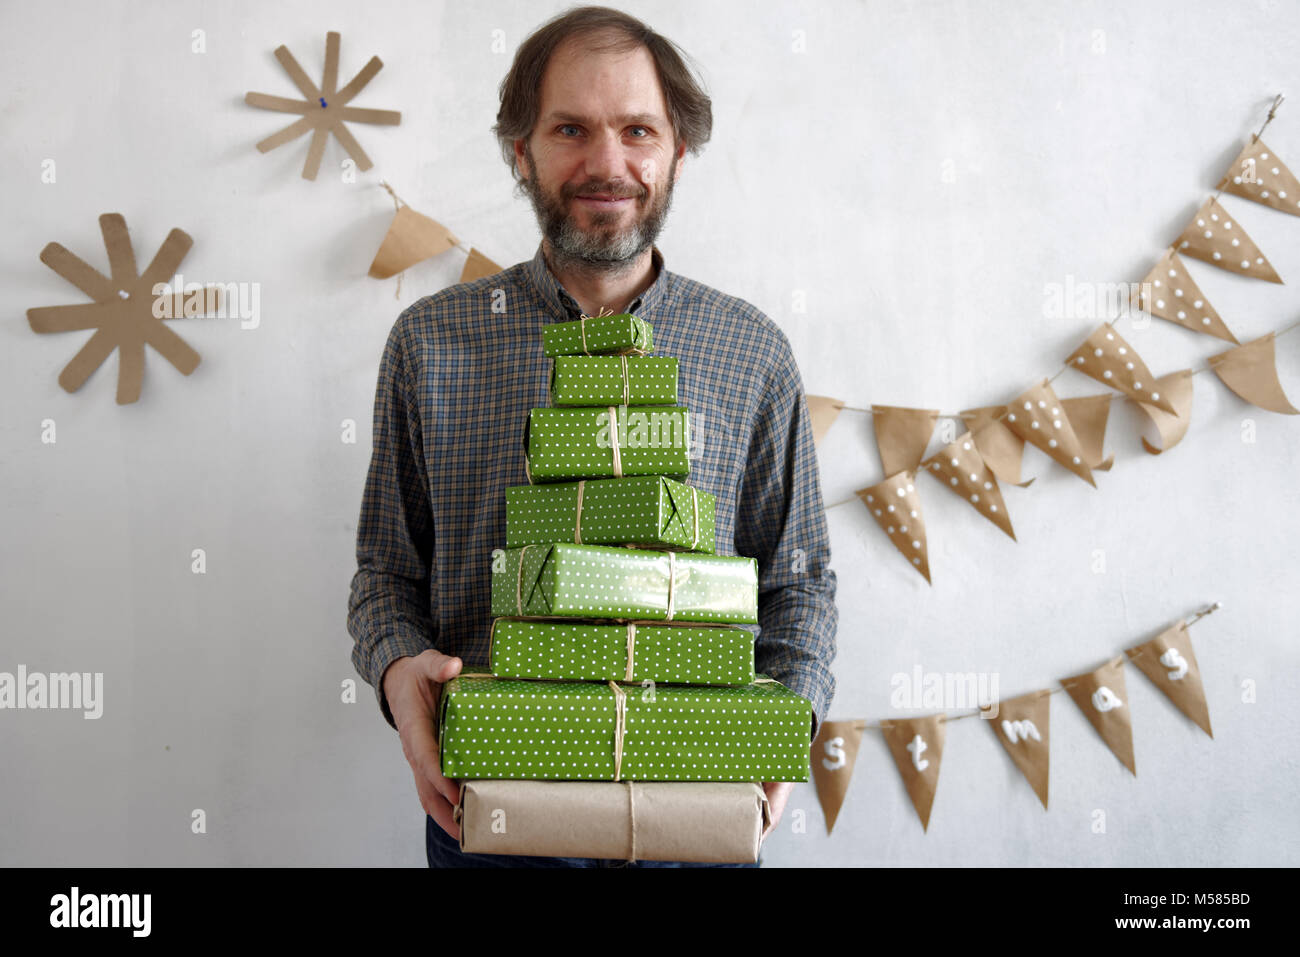 Mature man with stack of gift boxes in a room decorated for Christmas - Stock Image